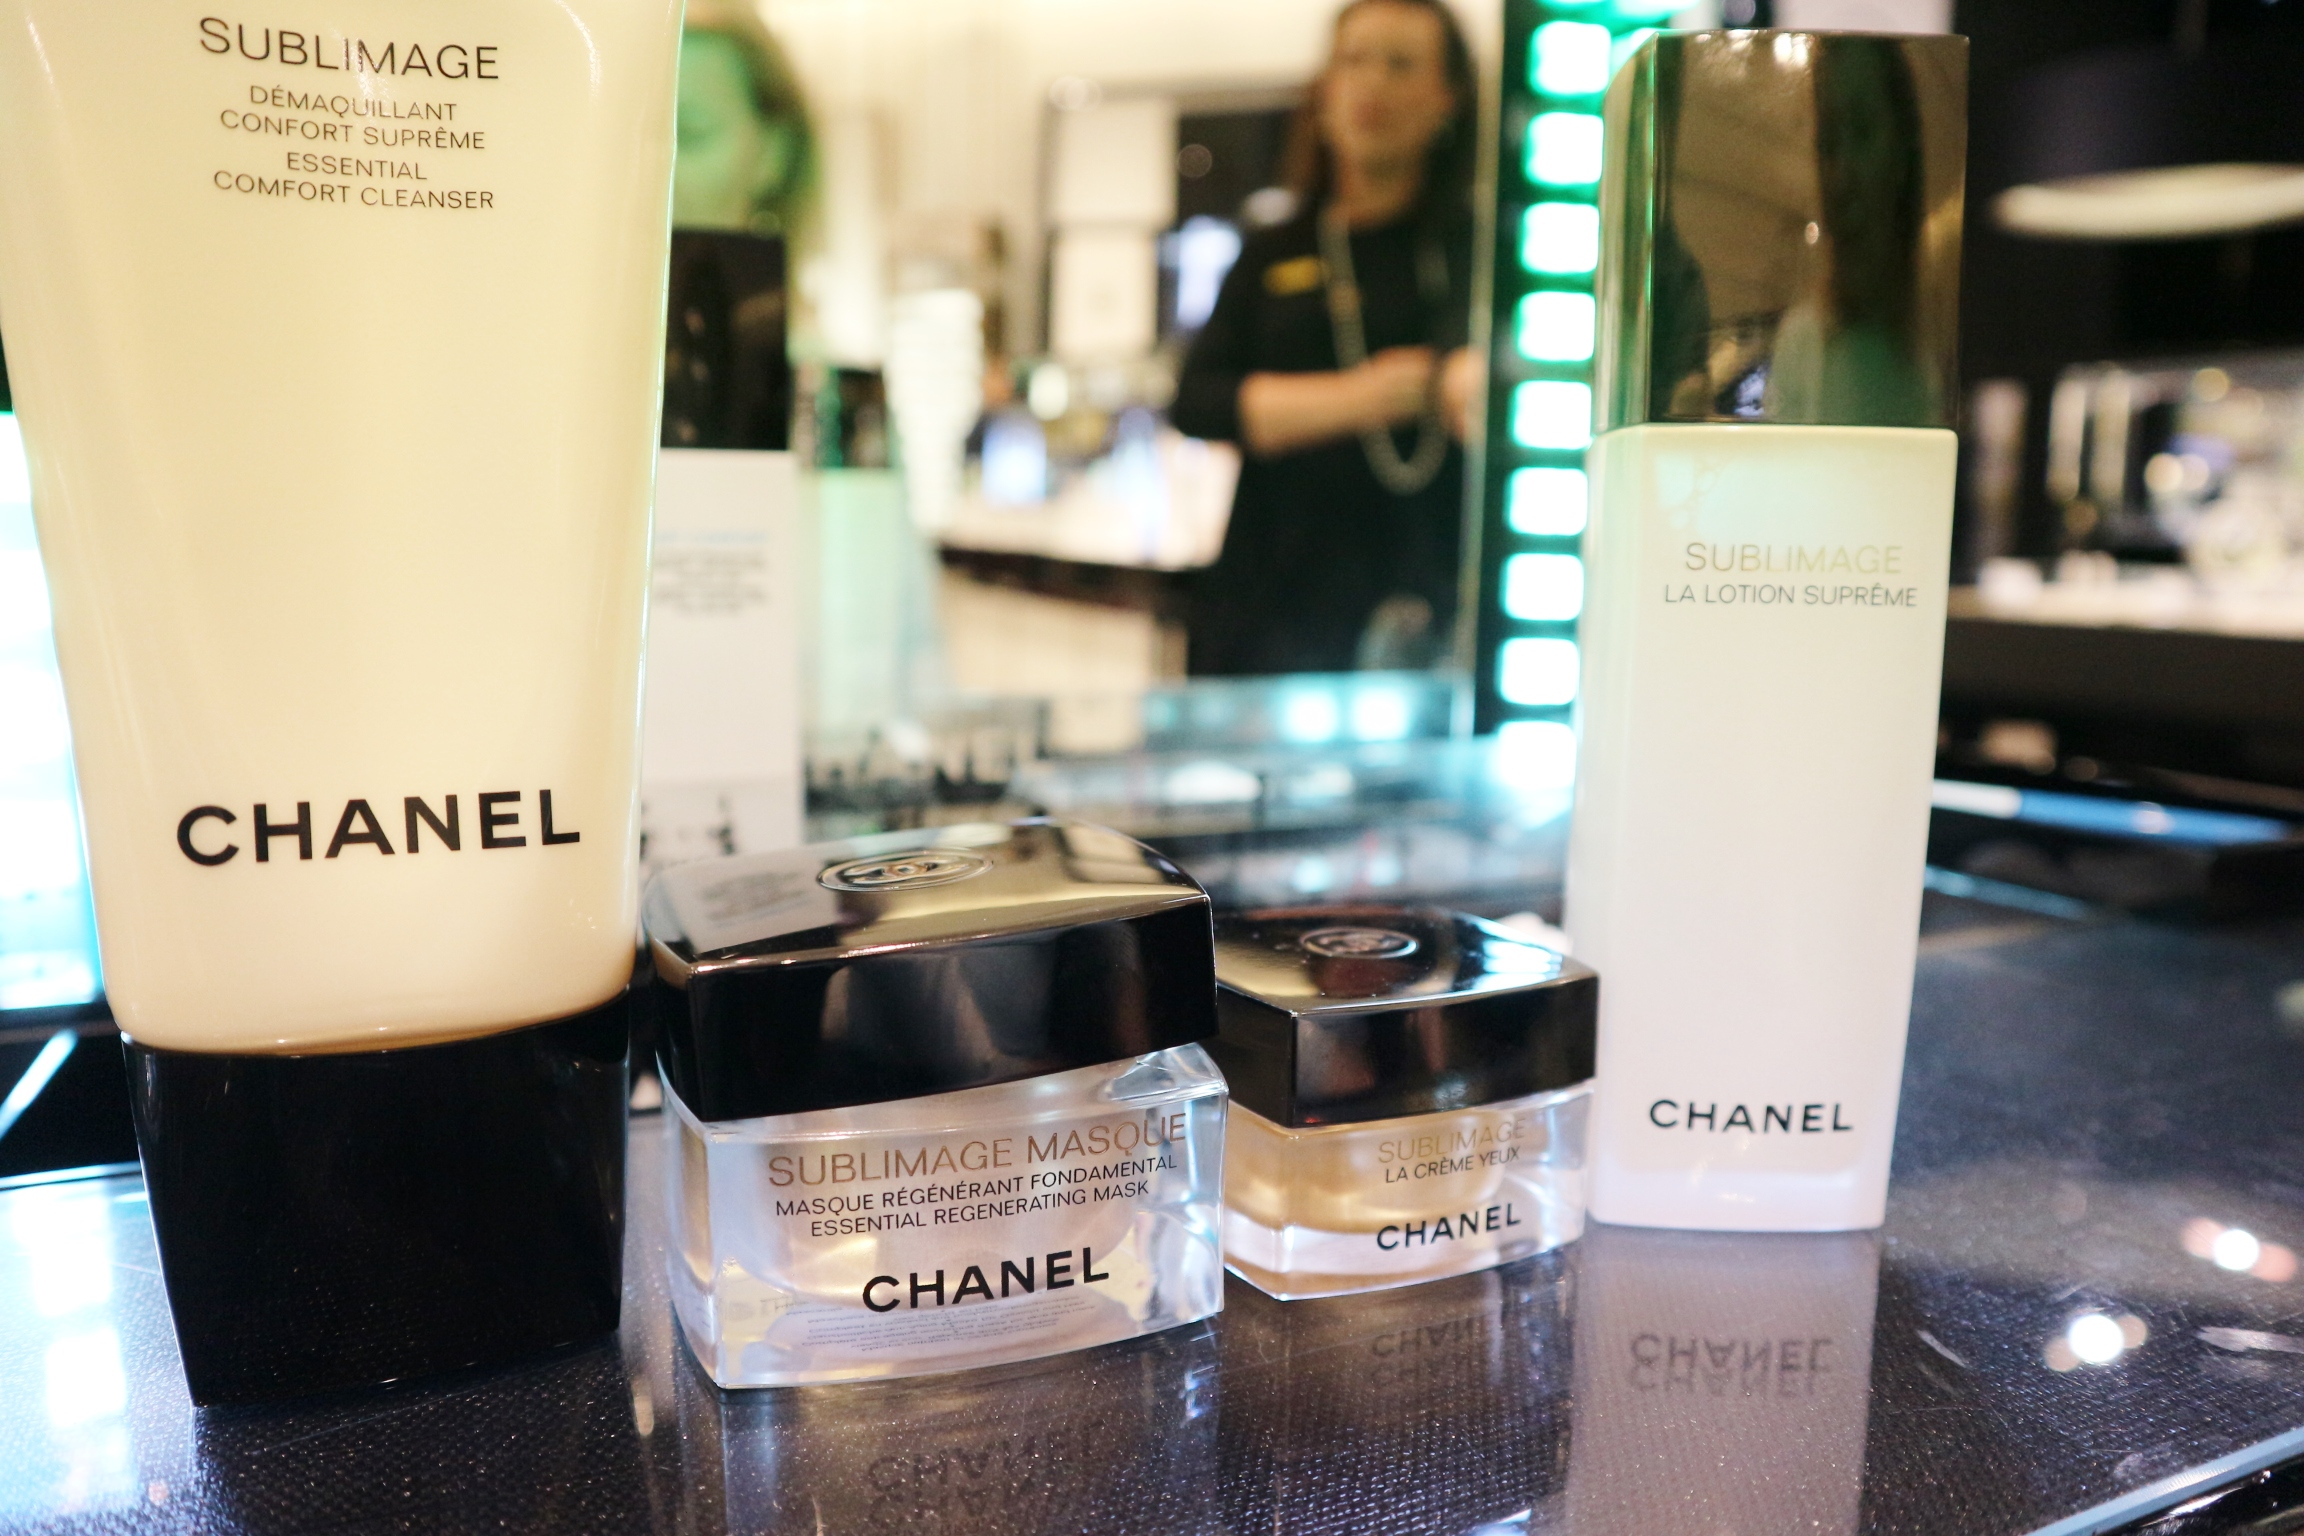 The Chanel Beauty Experience With Selfridges Jessi Lou Blog Le Blanc De Makeup Base Chosen Make Up For Her Was To Enhance Natural Look So Lorna Artist Chose Illuminating Primer